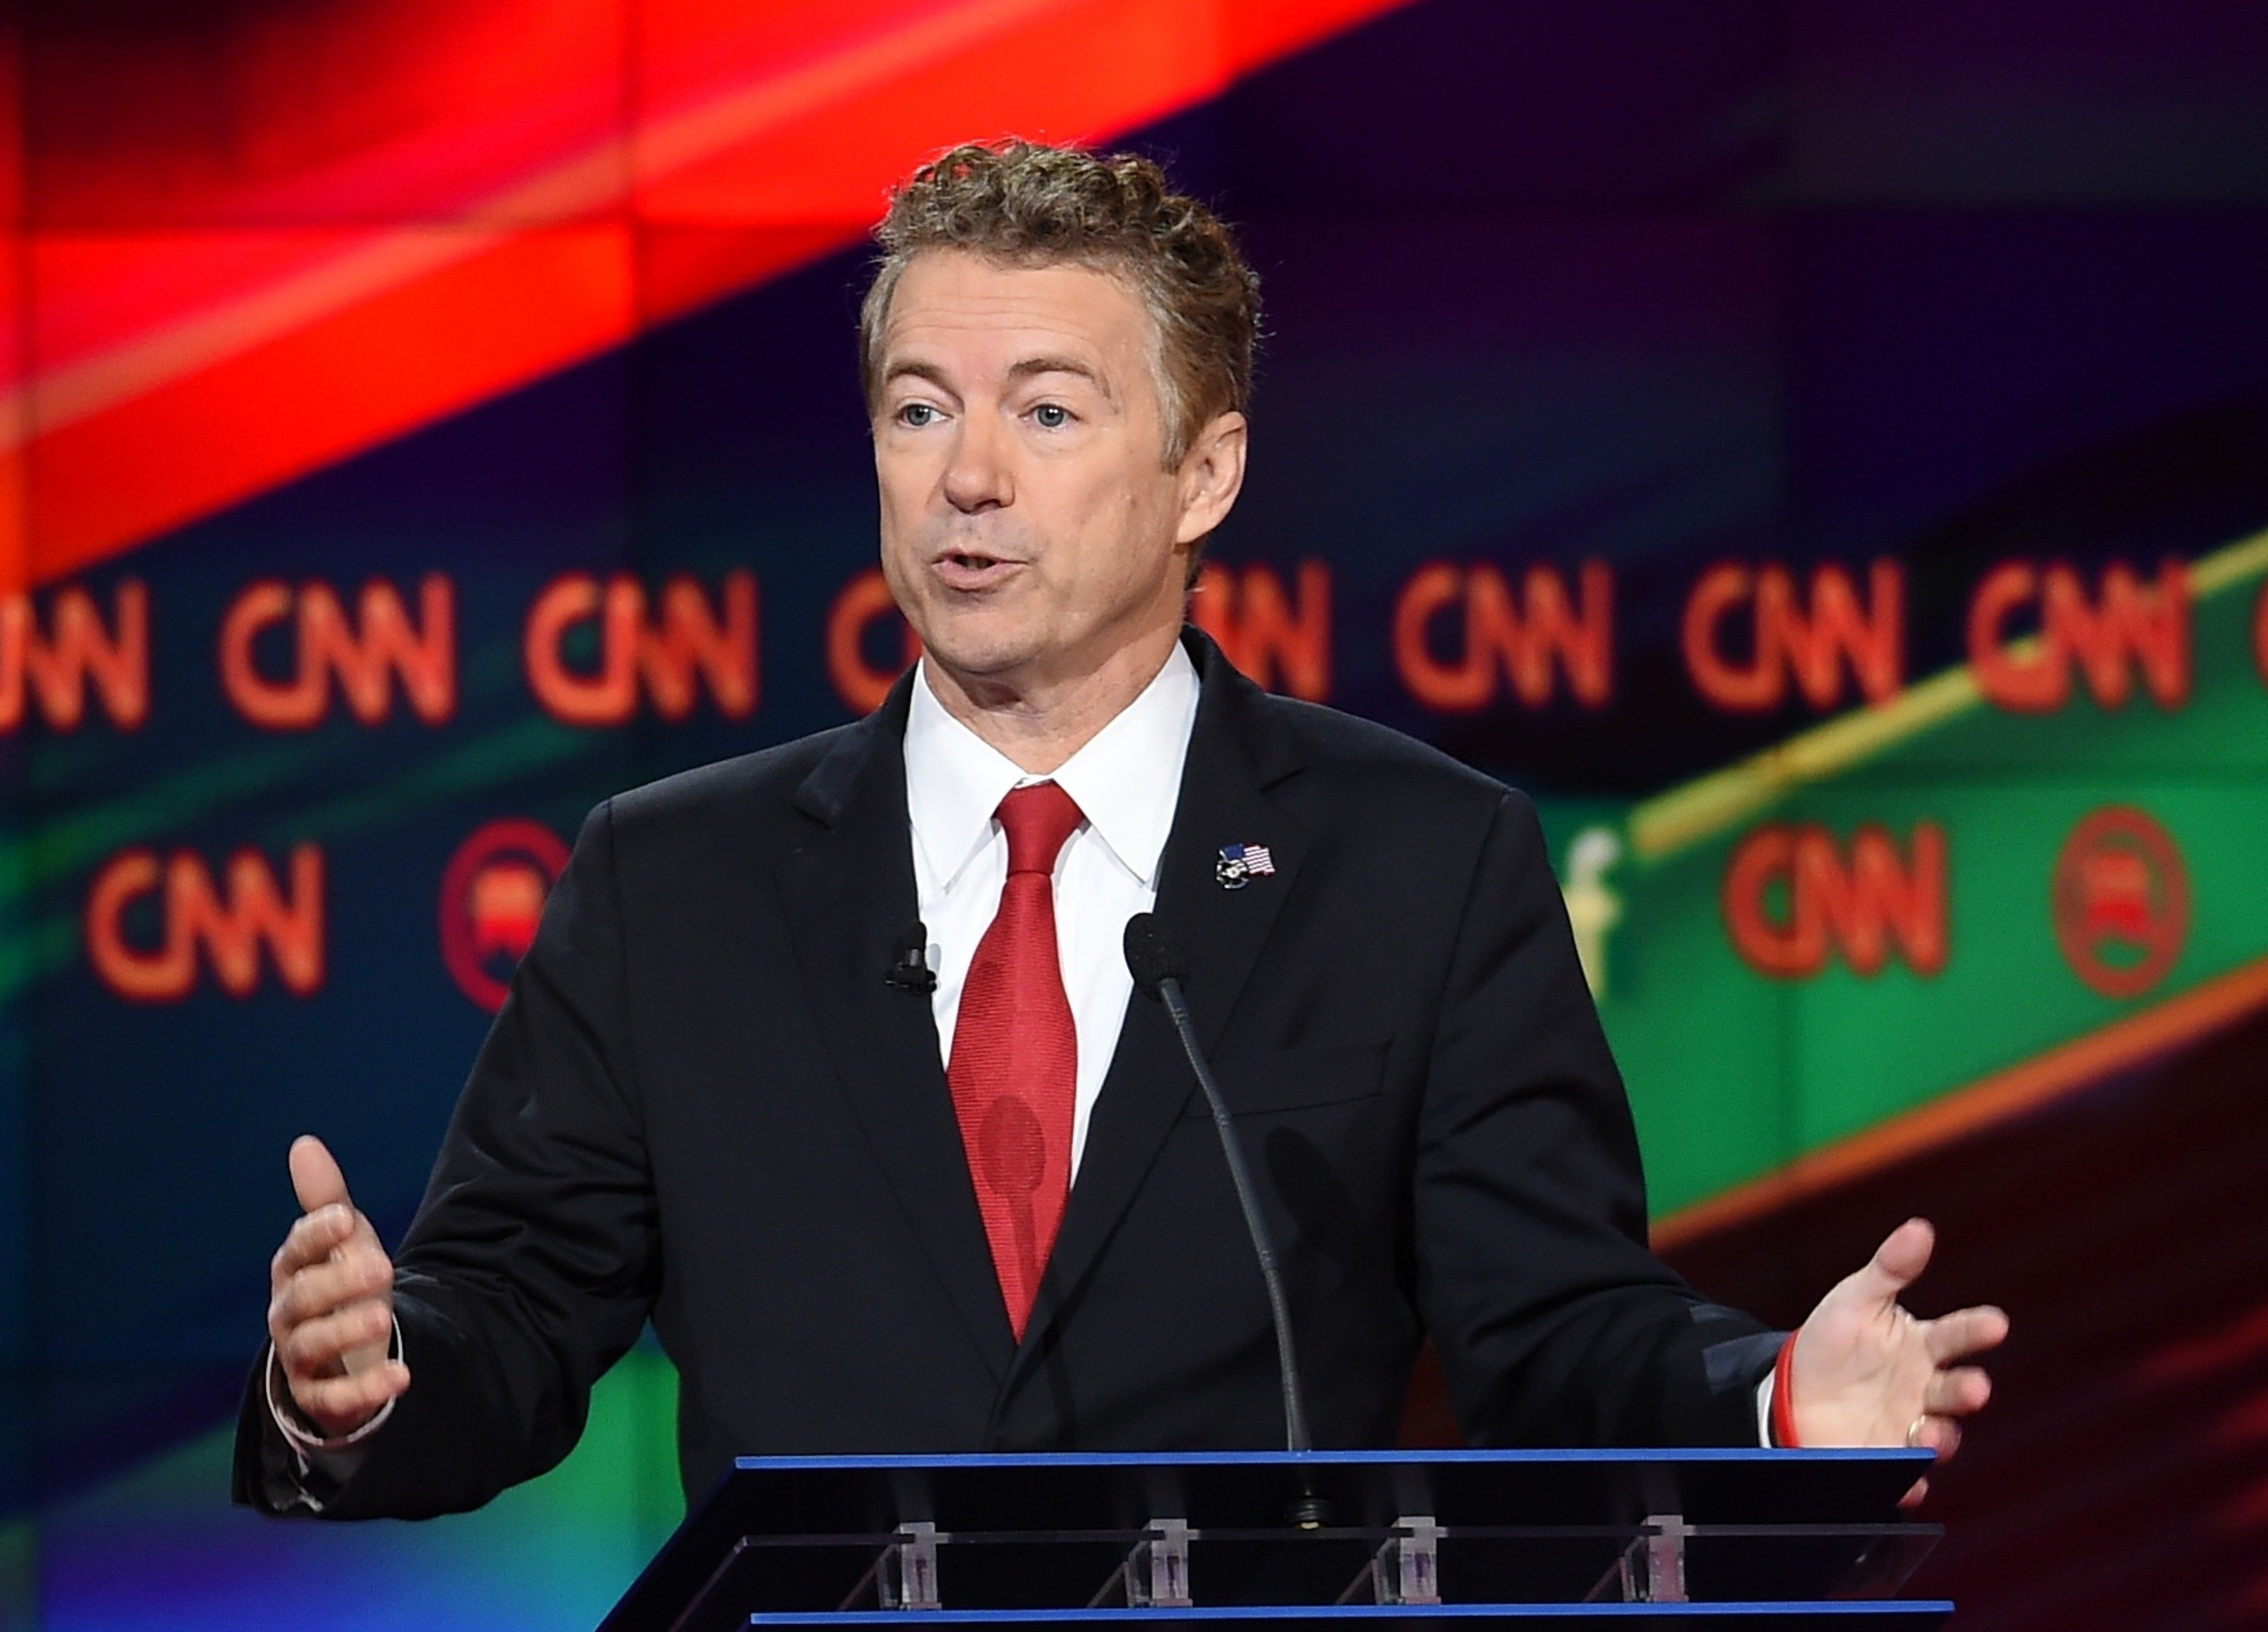 Republican presidential candidate Kentucky Sen. Rand Paul gestures during in the Republican Presidential Debate, hosted by CNN, at The Venetian Las Vegas on December 15, 2015 in Las Vegas, Nevada. AFP PHOTO/ ROBYN BECK / AFP / ROBYN BECK        (Photo credit should read ROBYN BECK/AFP/Getty Images)